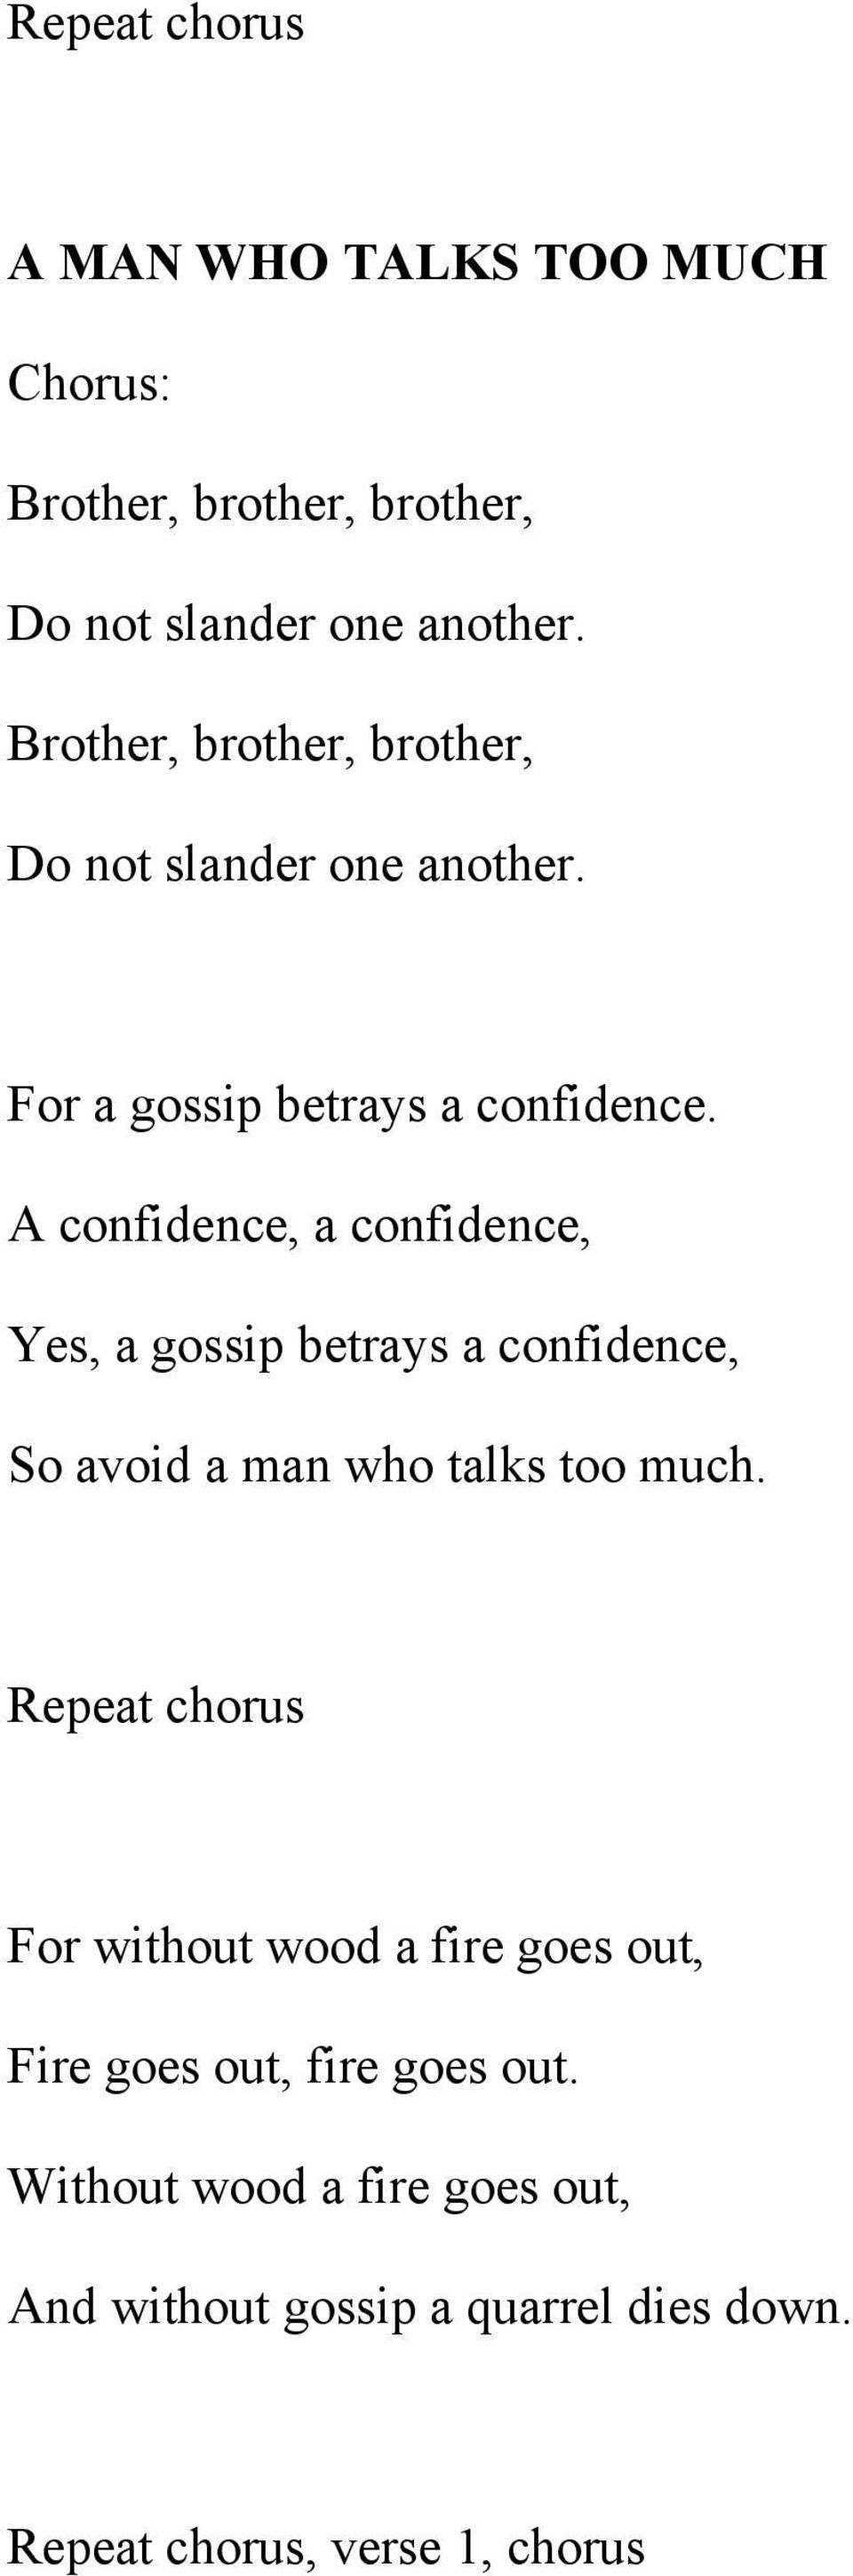 A confidence, a confidence, Yes, a gossip betrays a confidence, So avoid a man who talks too much.